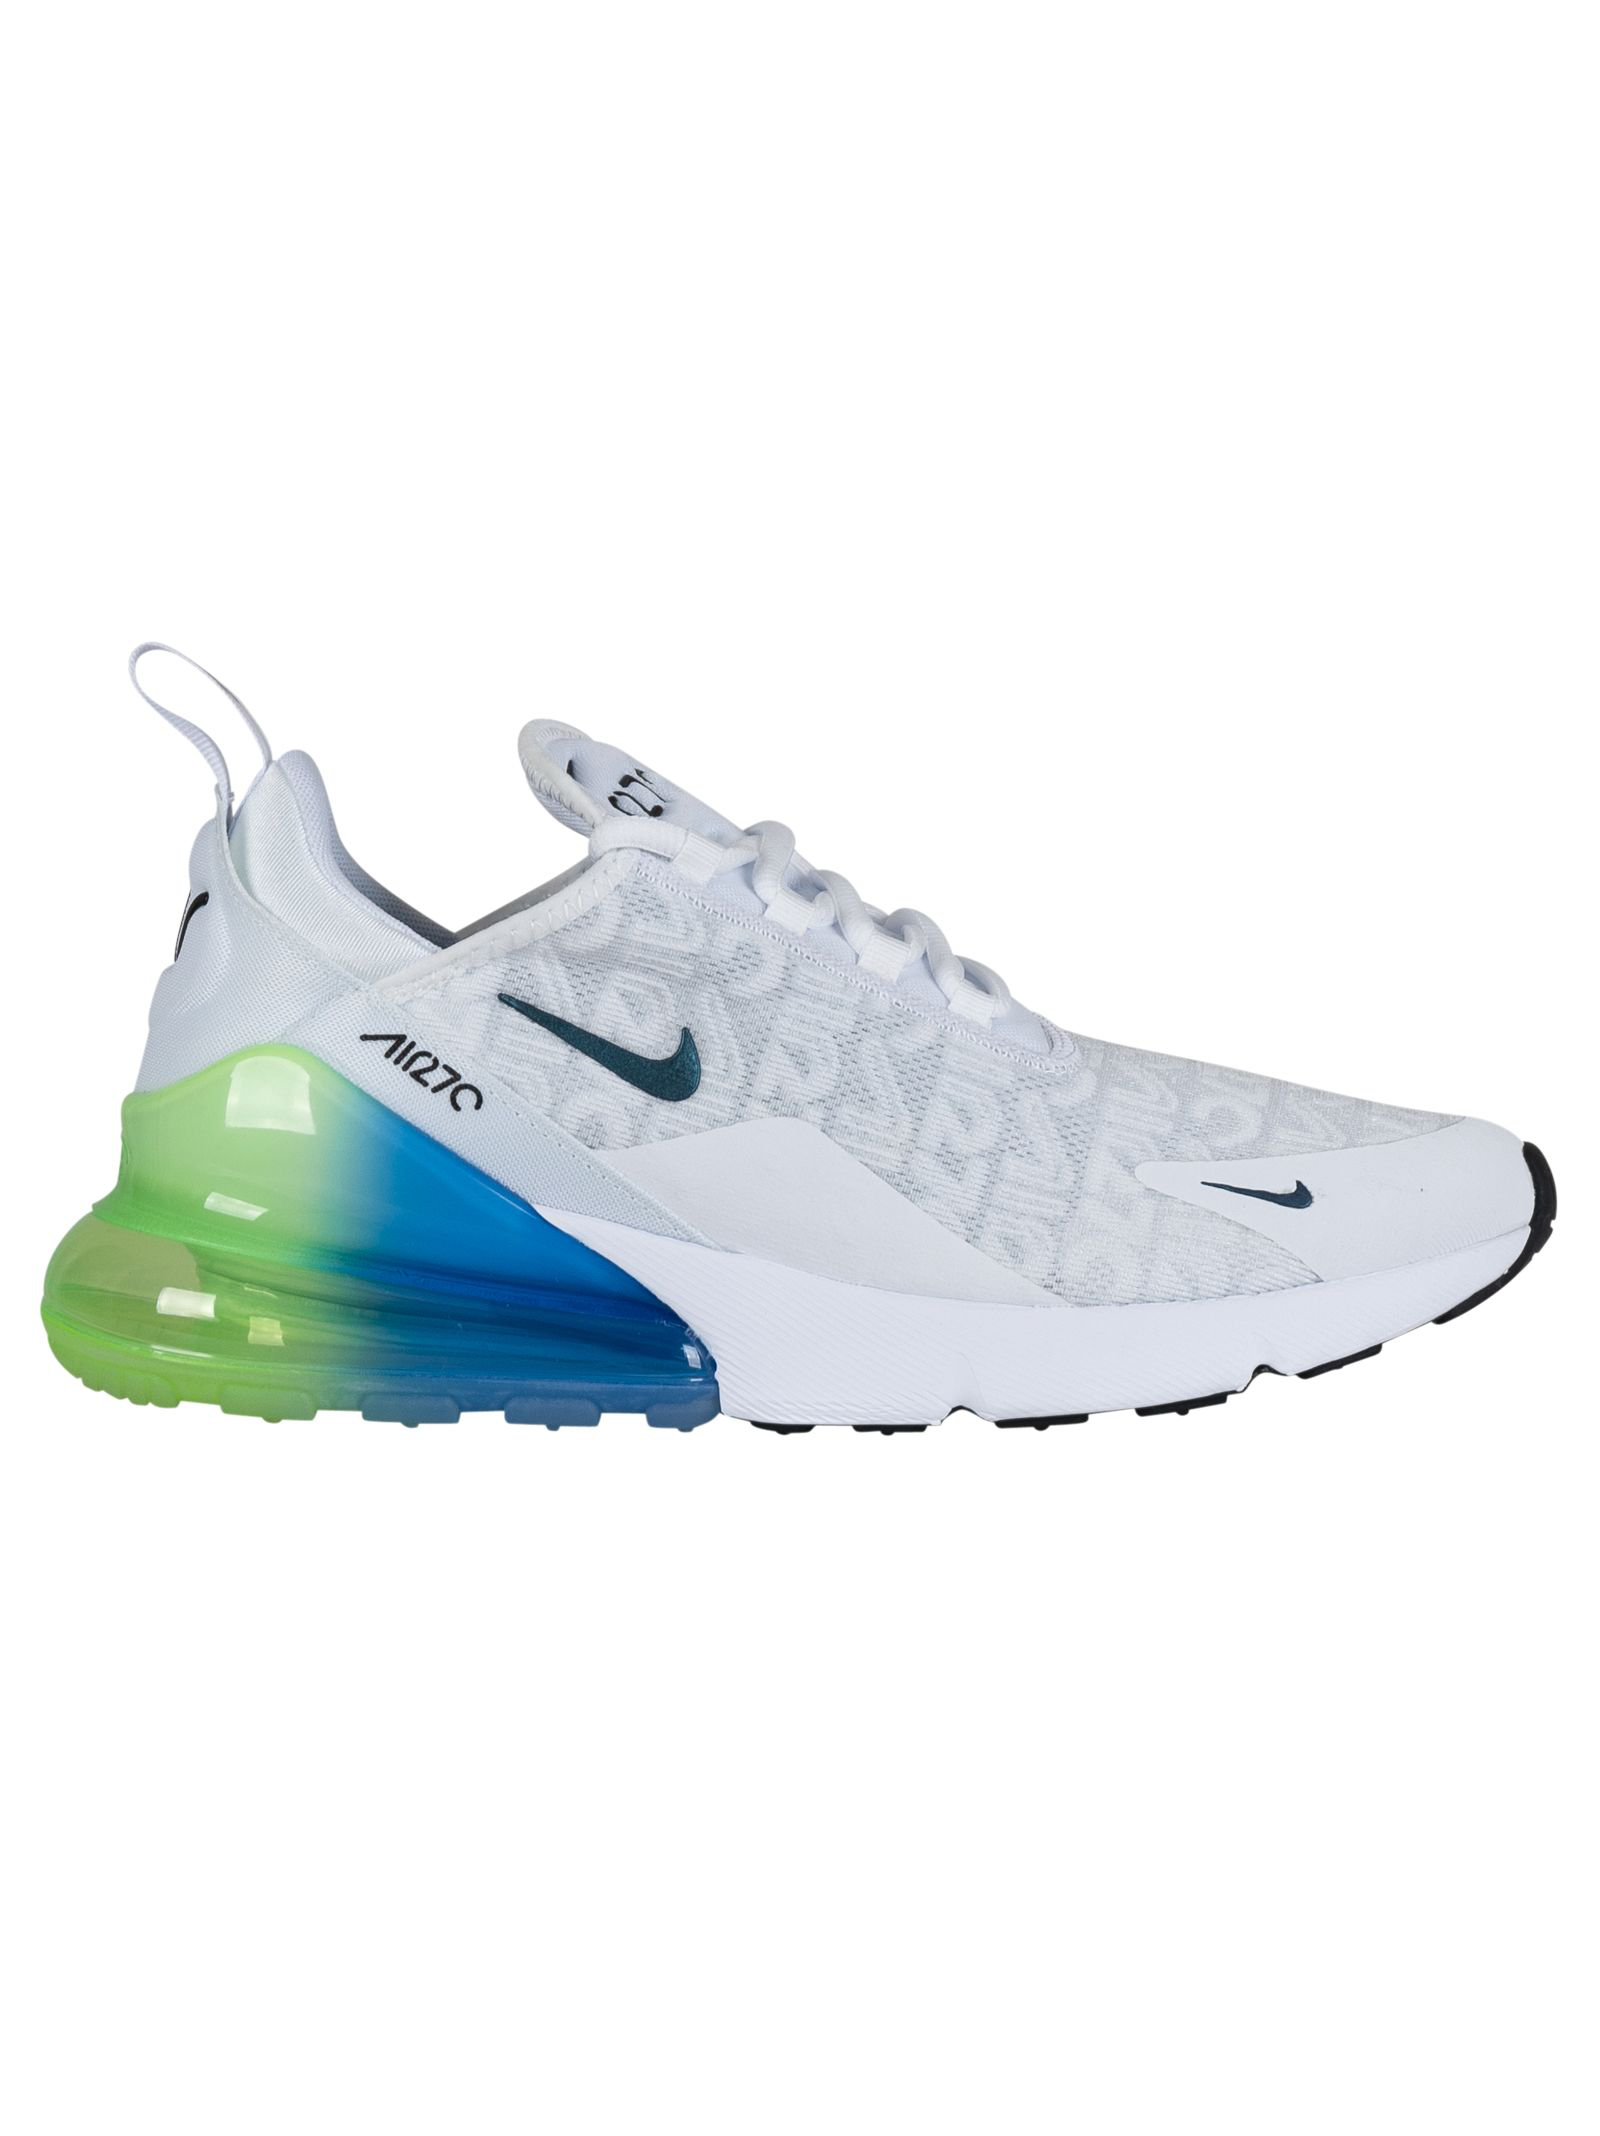 bfbbcded Nike Men's Air Max 270 Se Casual Shoes, White | ModeSens